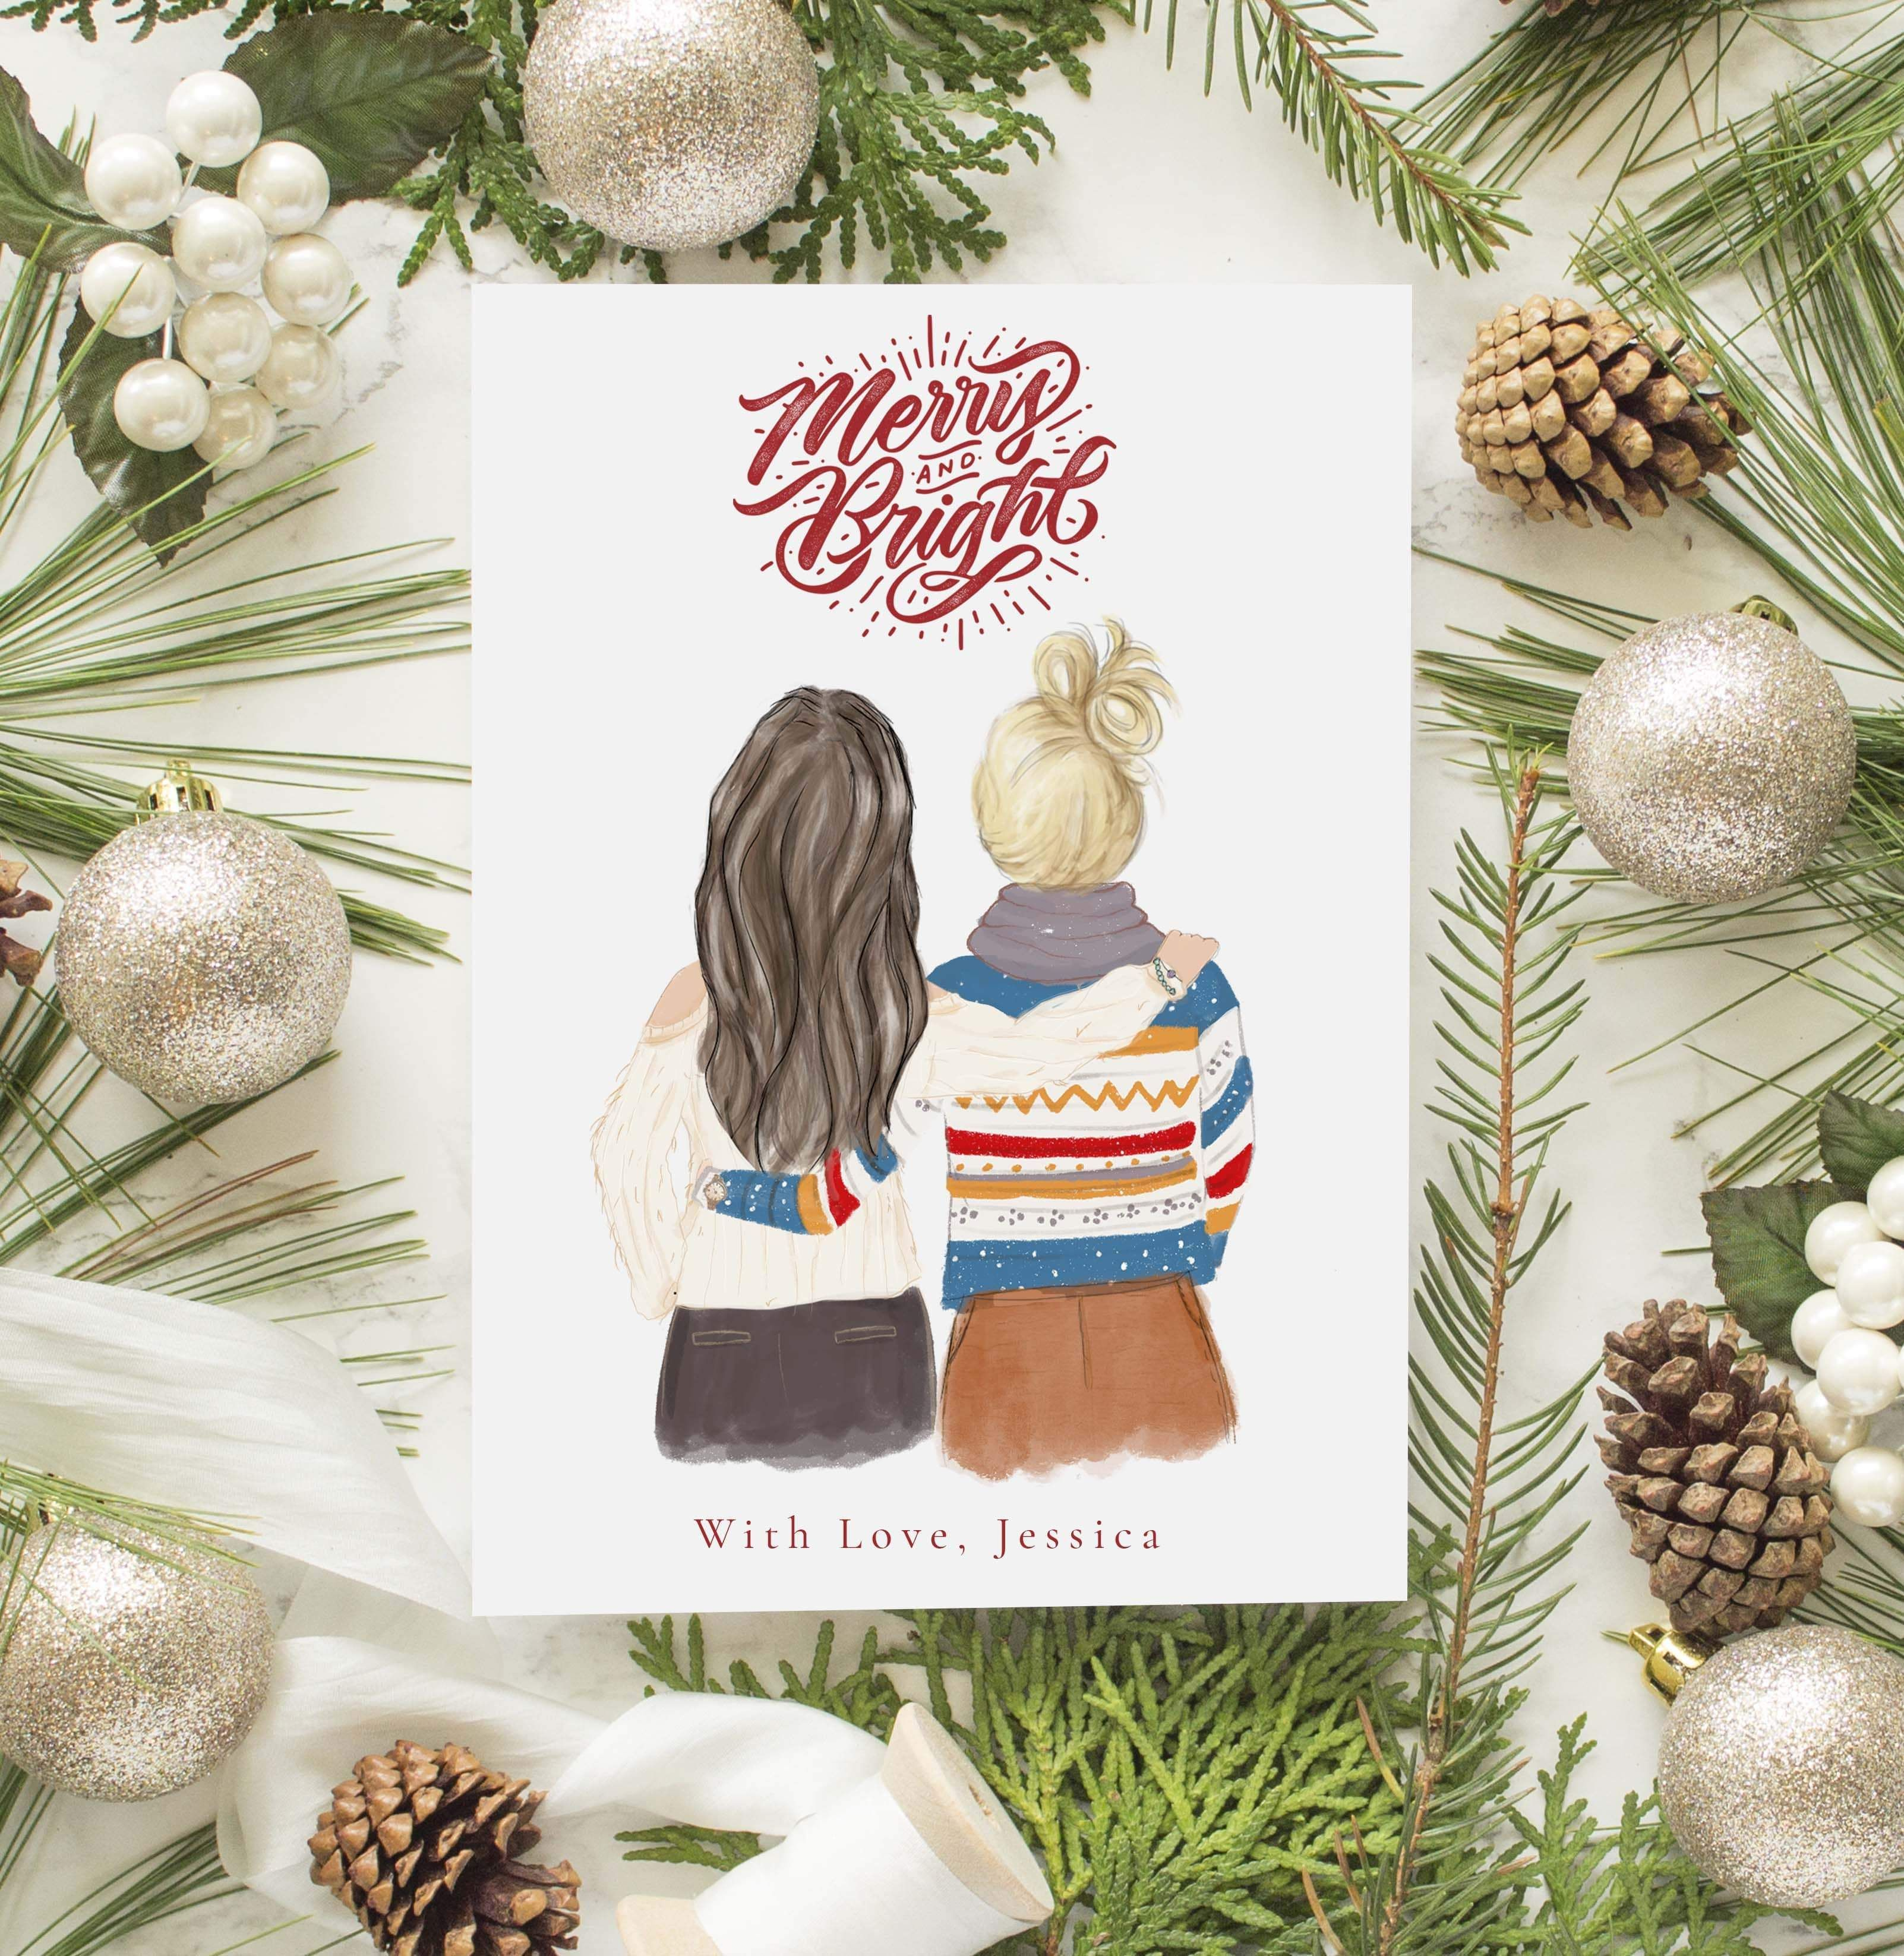 Popular Custom Made Christmas Gifts For 2021 Personalized Best Friends Female Christmas Greeting Card In 2021 Christmas Greetings Personalised Christmas Cards Diy Christmas Gifts